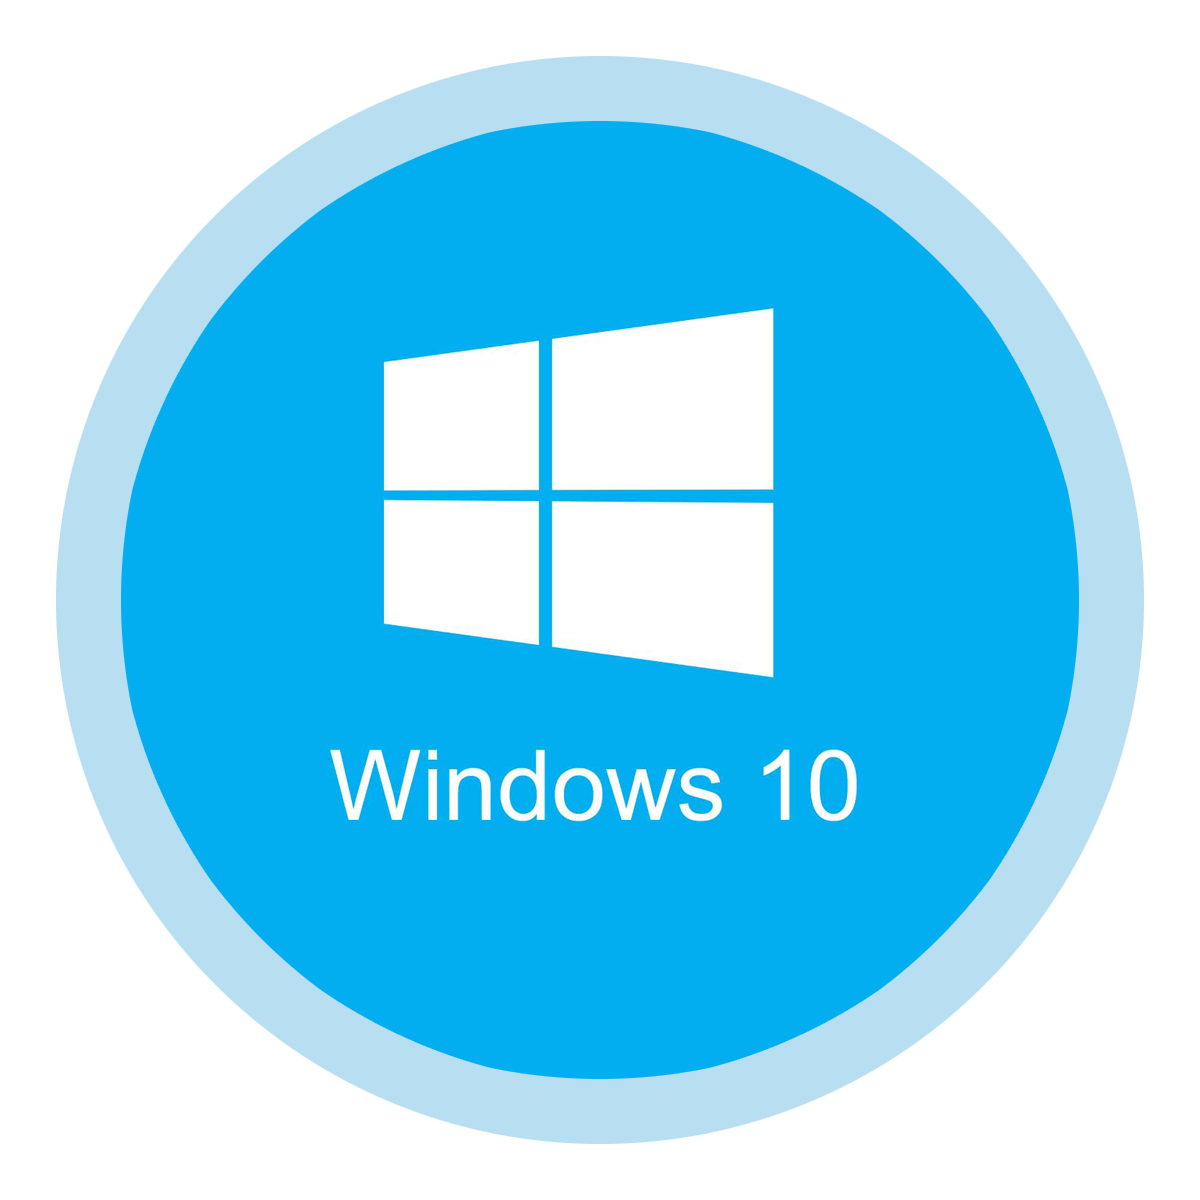 Image result for windows 10 logo